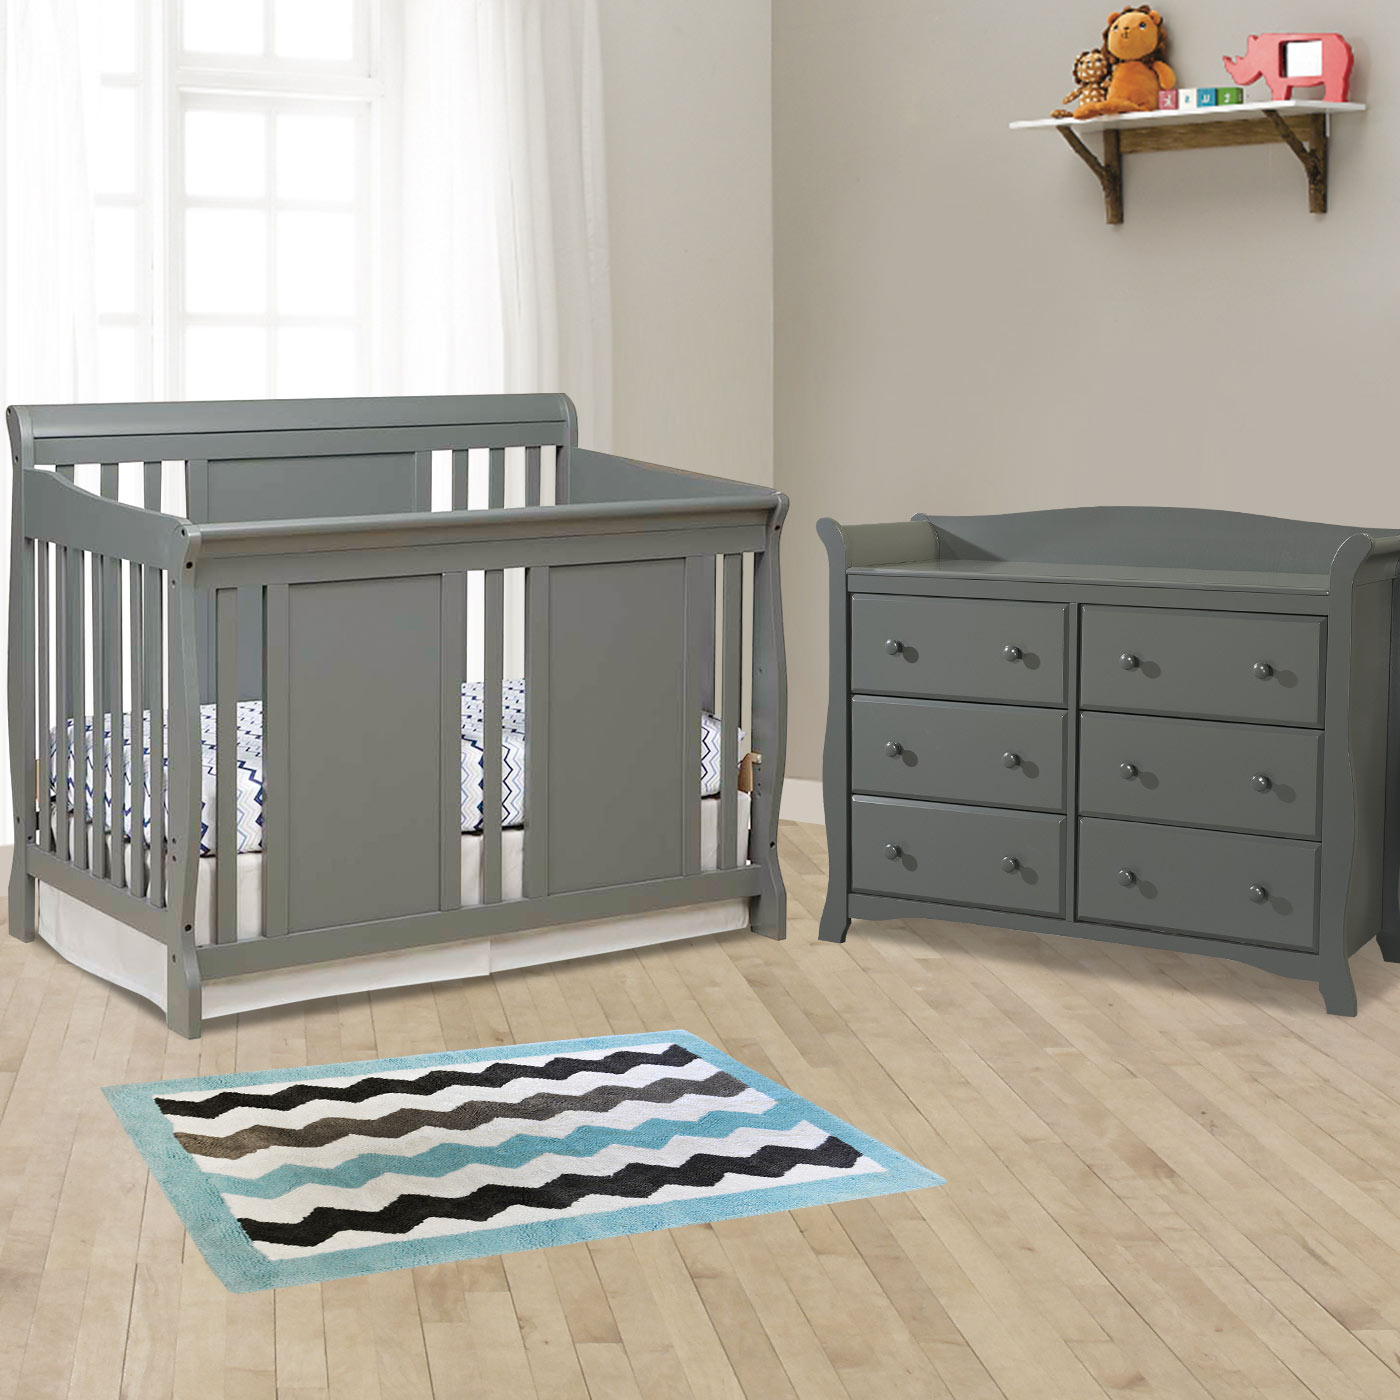 bellissimo cot natural nursery cots girl of skandi crib baby harrow white walnut gray furniture set ridiculous mamas wendy bedroom grey papas and size snuzkot piece sets convertible changing arates table rules off a about dable dresser full